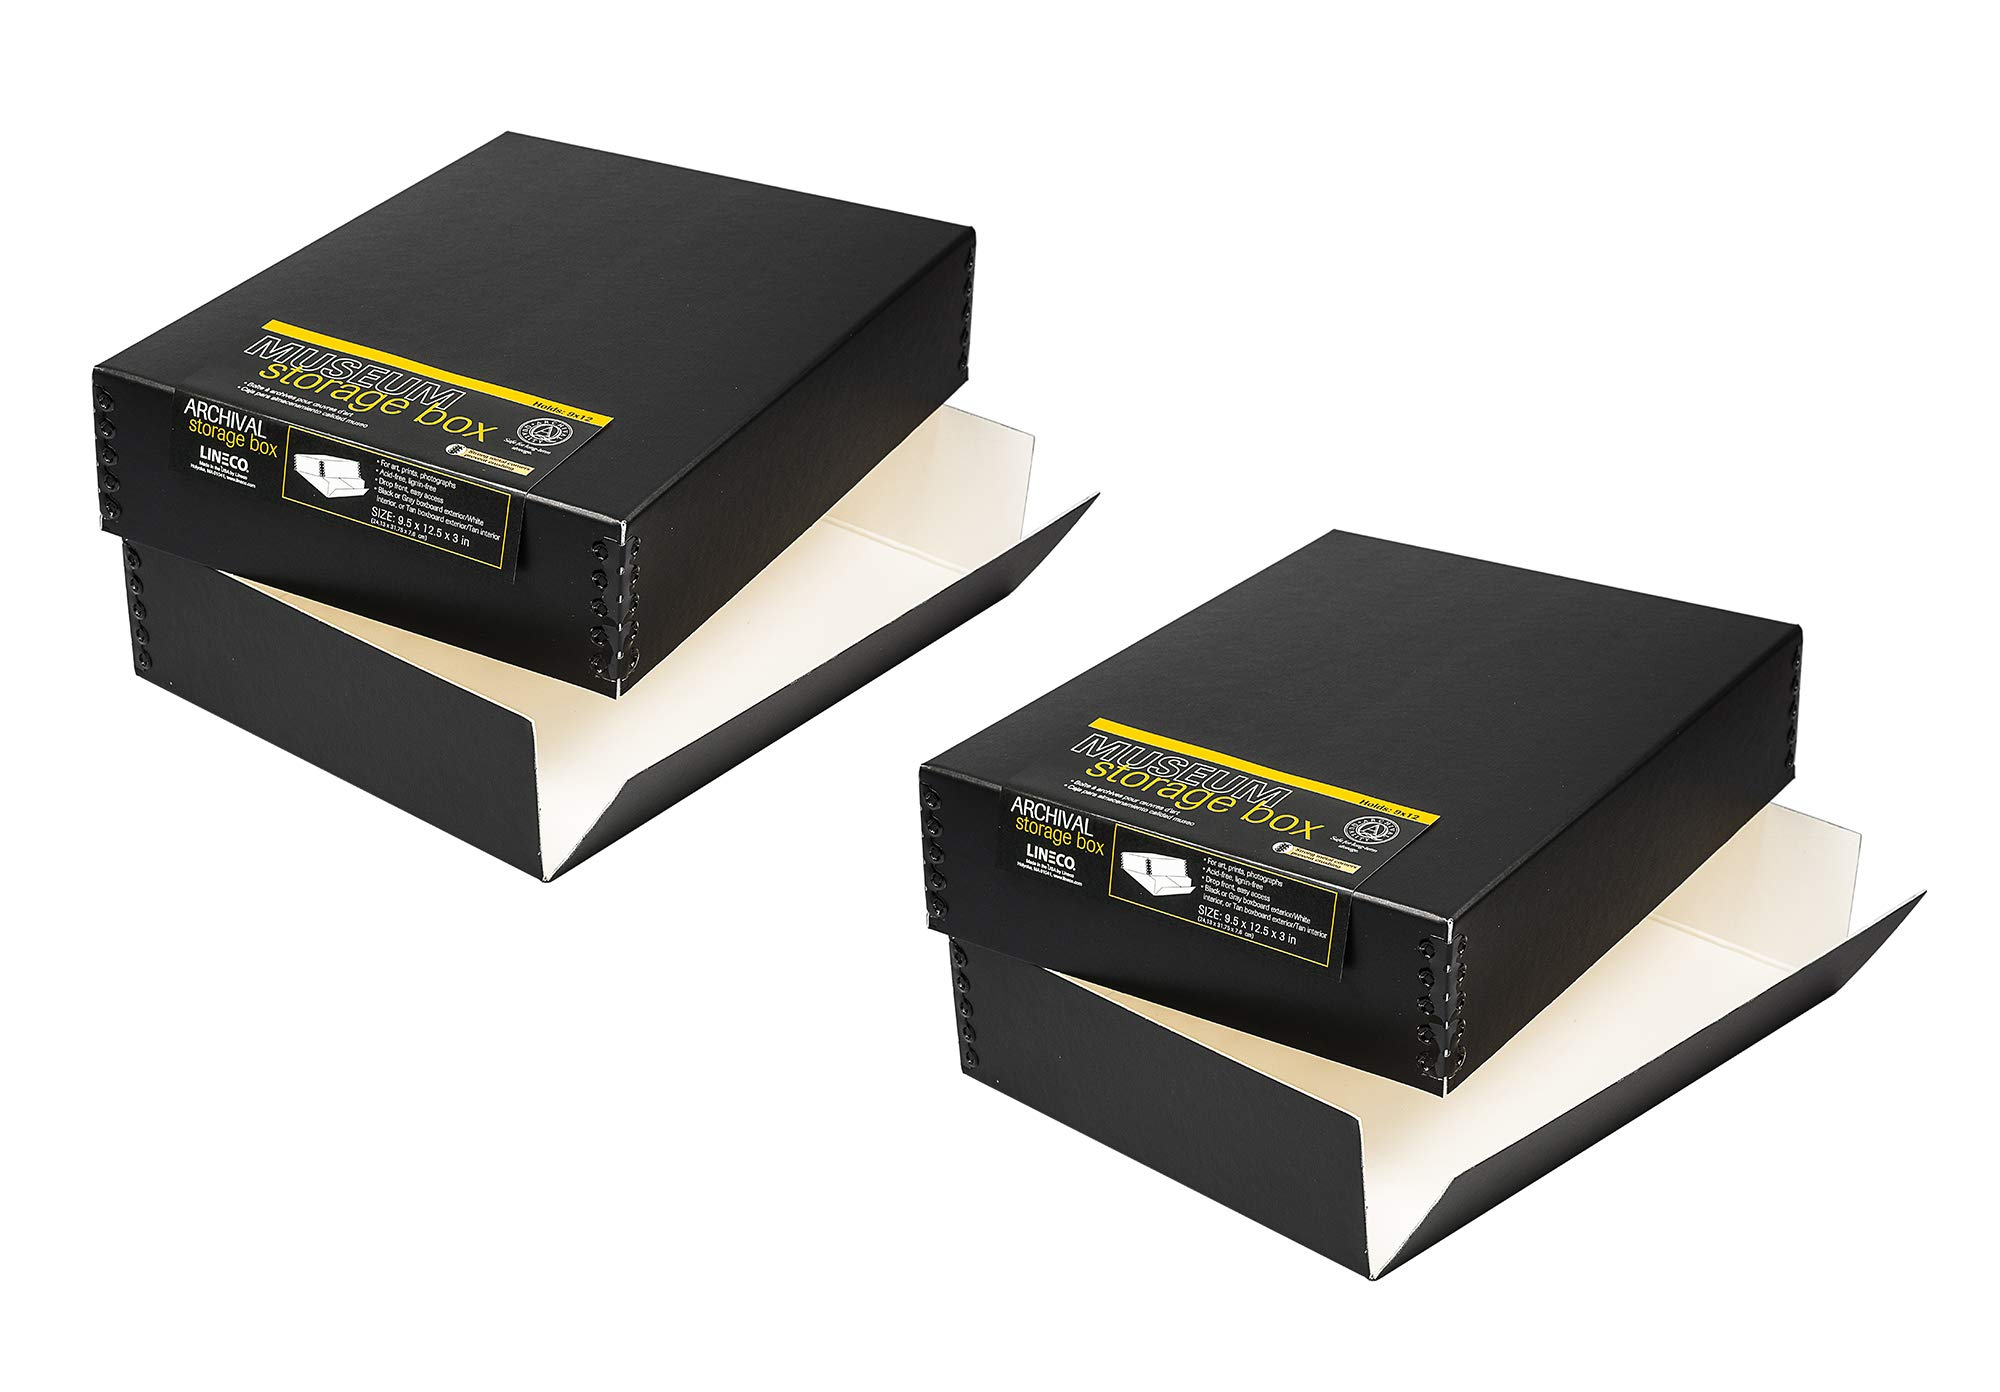 Lineco, Museum Storage Box - Pack of 2 - Holds 9x12 Documents, Pictures, Prints - Archival Quality - Acid Free, Lignin Free - Drop Front, Easy Access - 9.5 x 12.5 x 3 inches